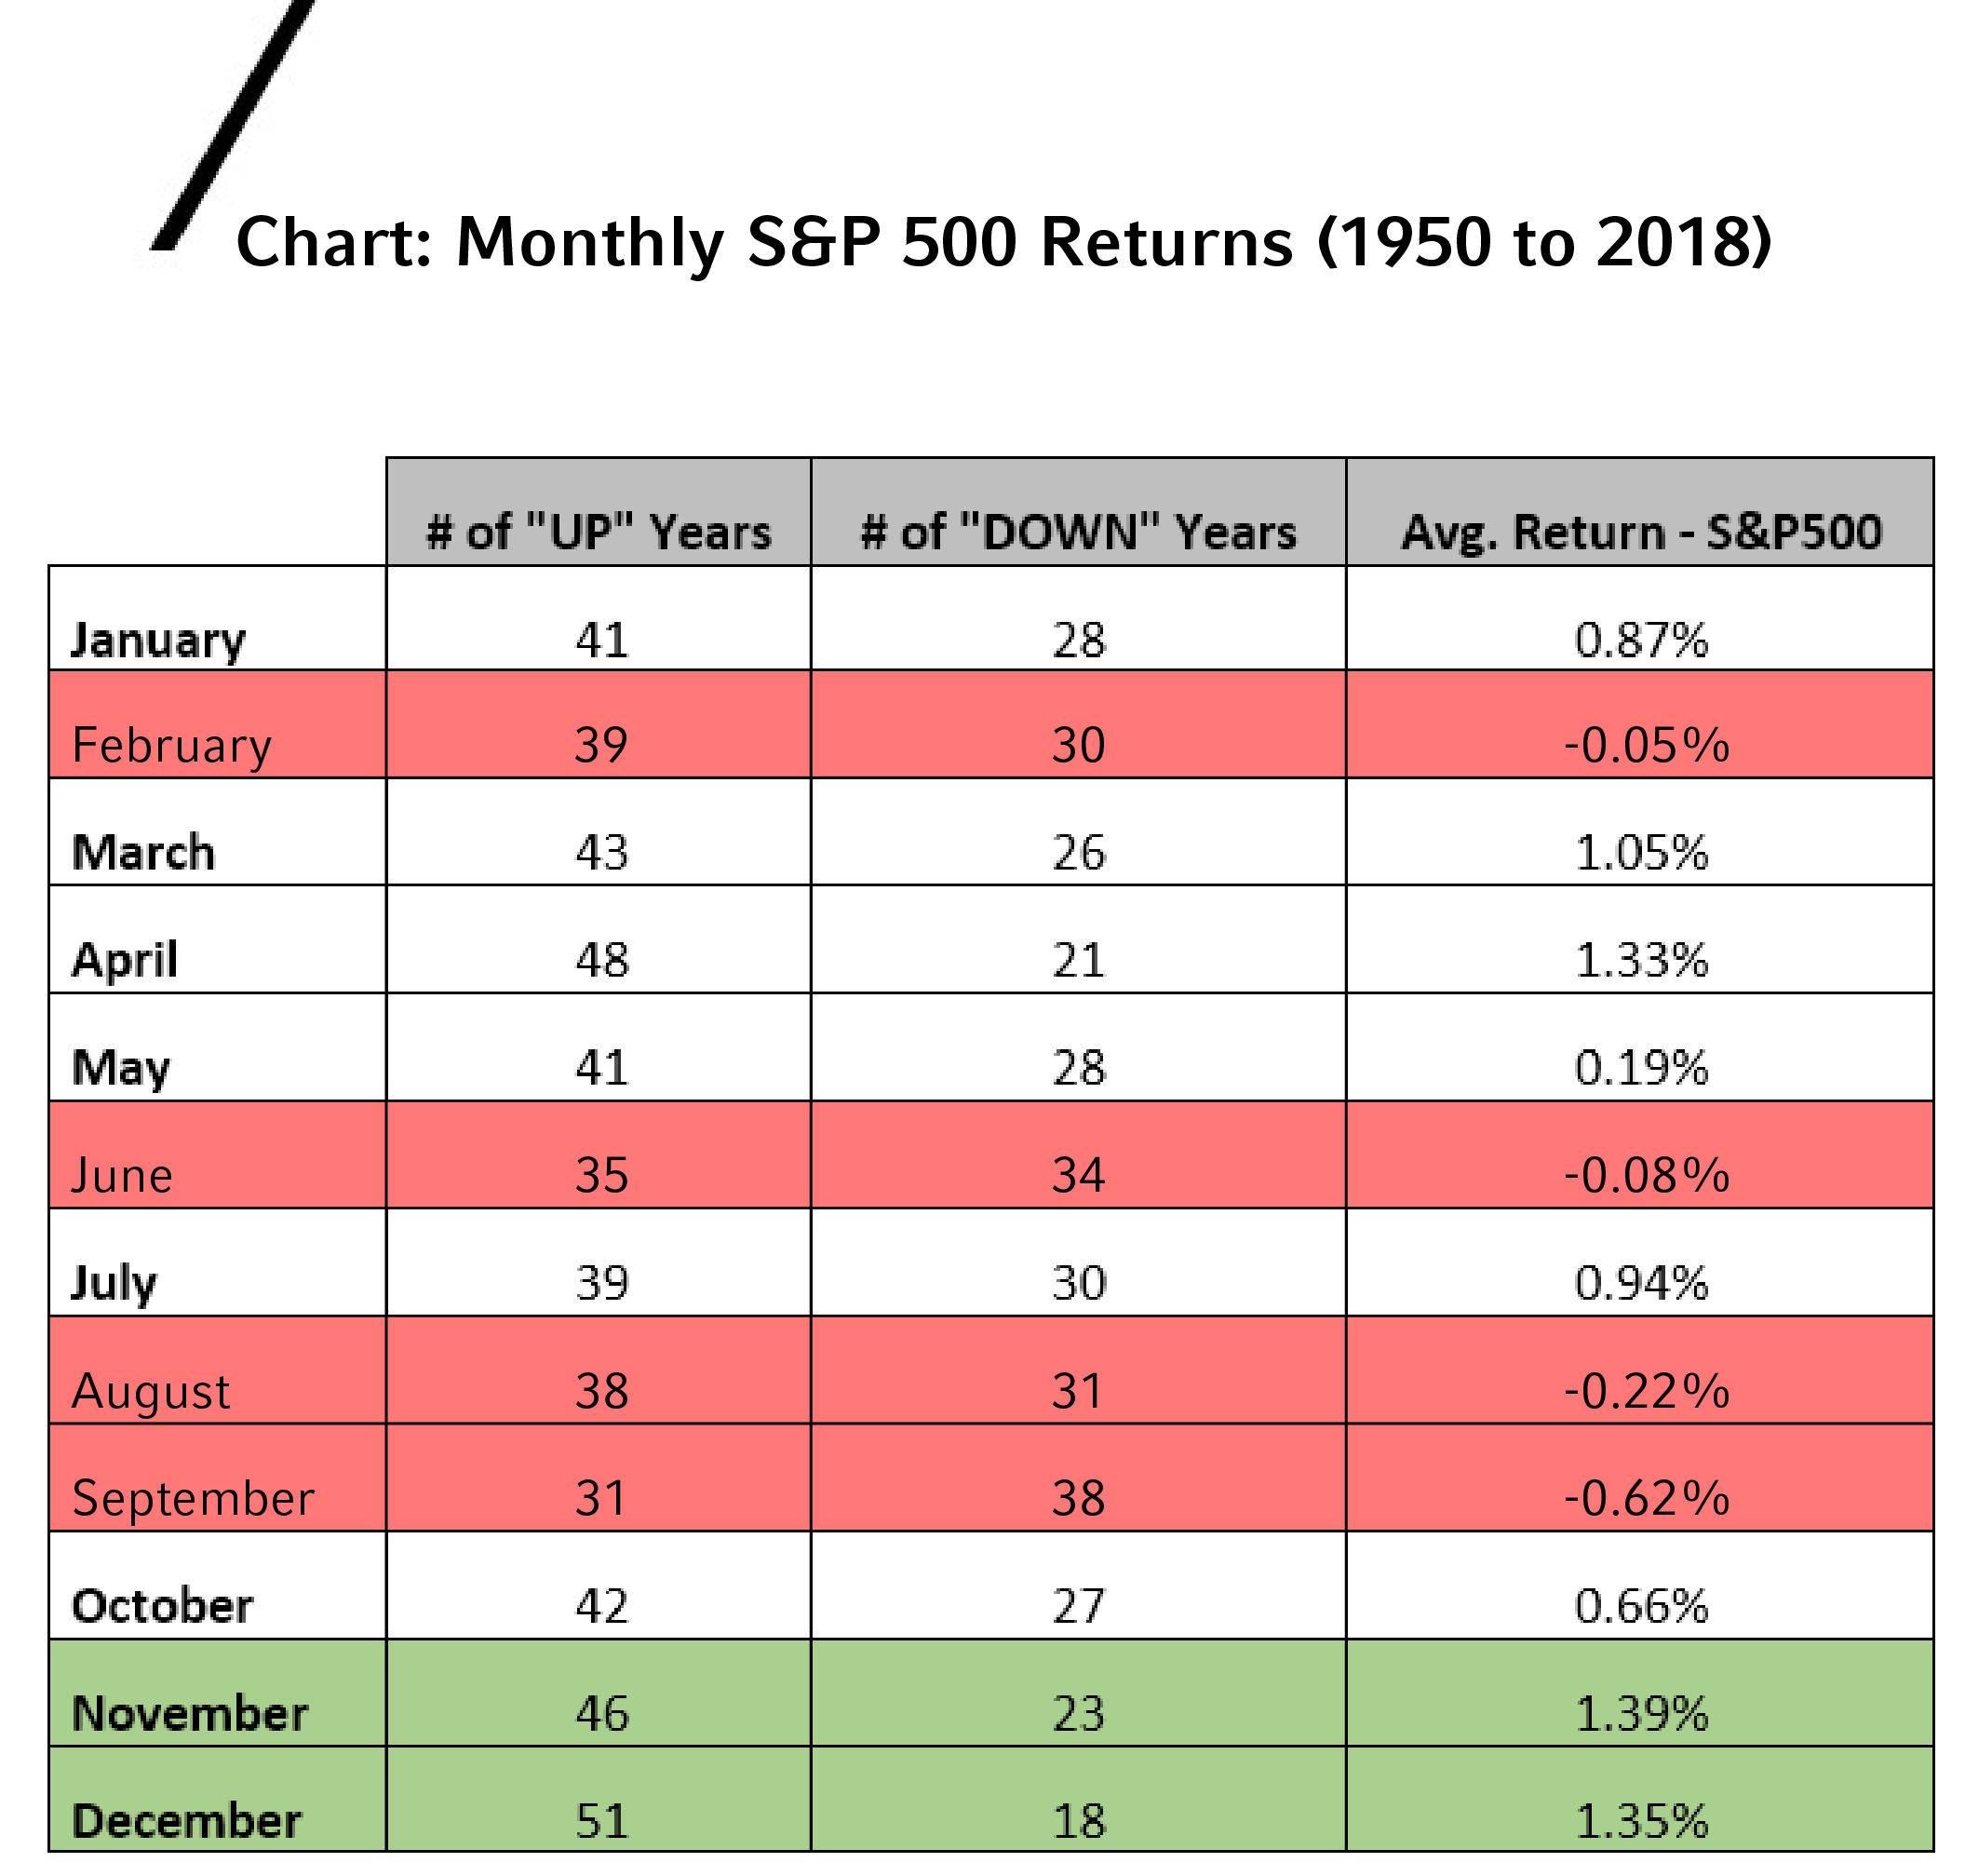 Chart of monthly S&P 500 returns, 1950-2018